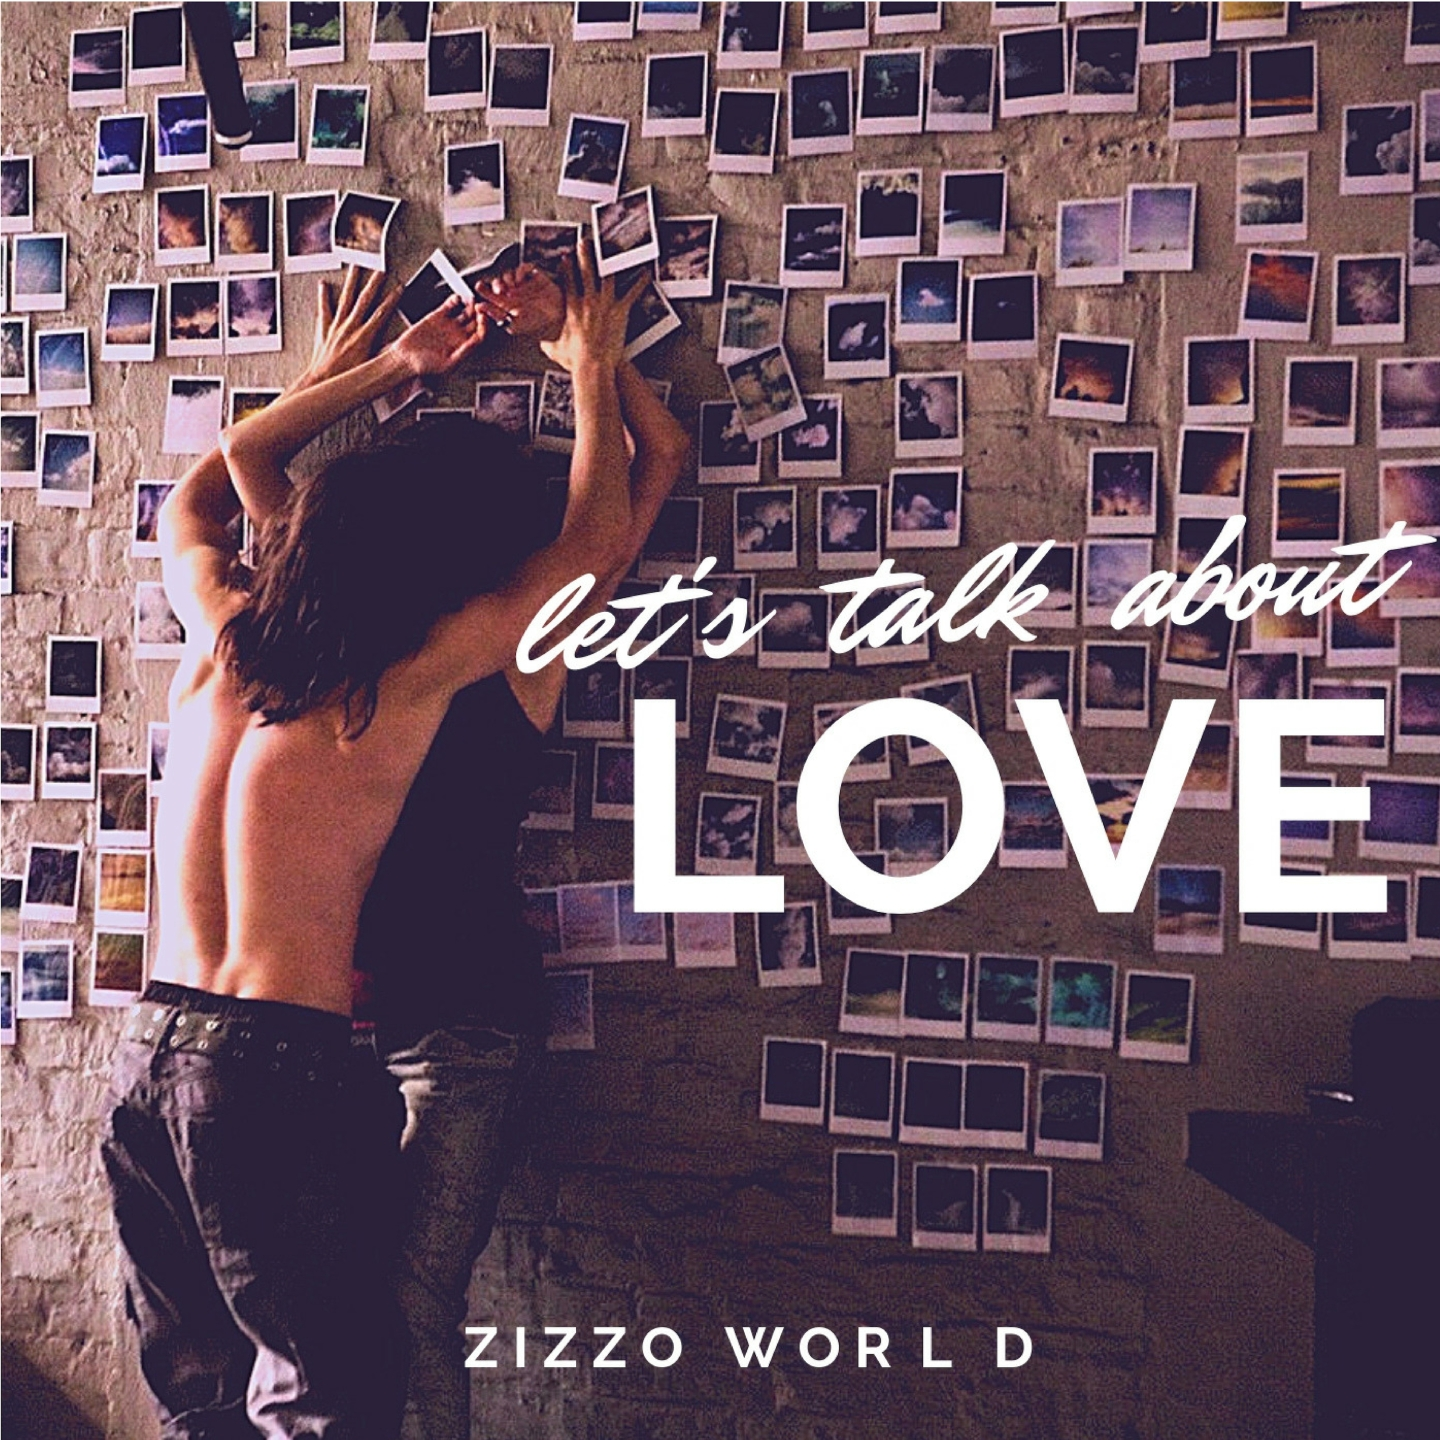 FRESH: 'Let's Talk About Love' - Zizzo World